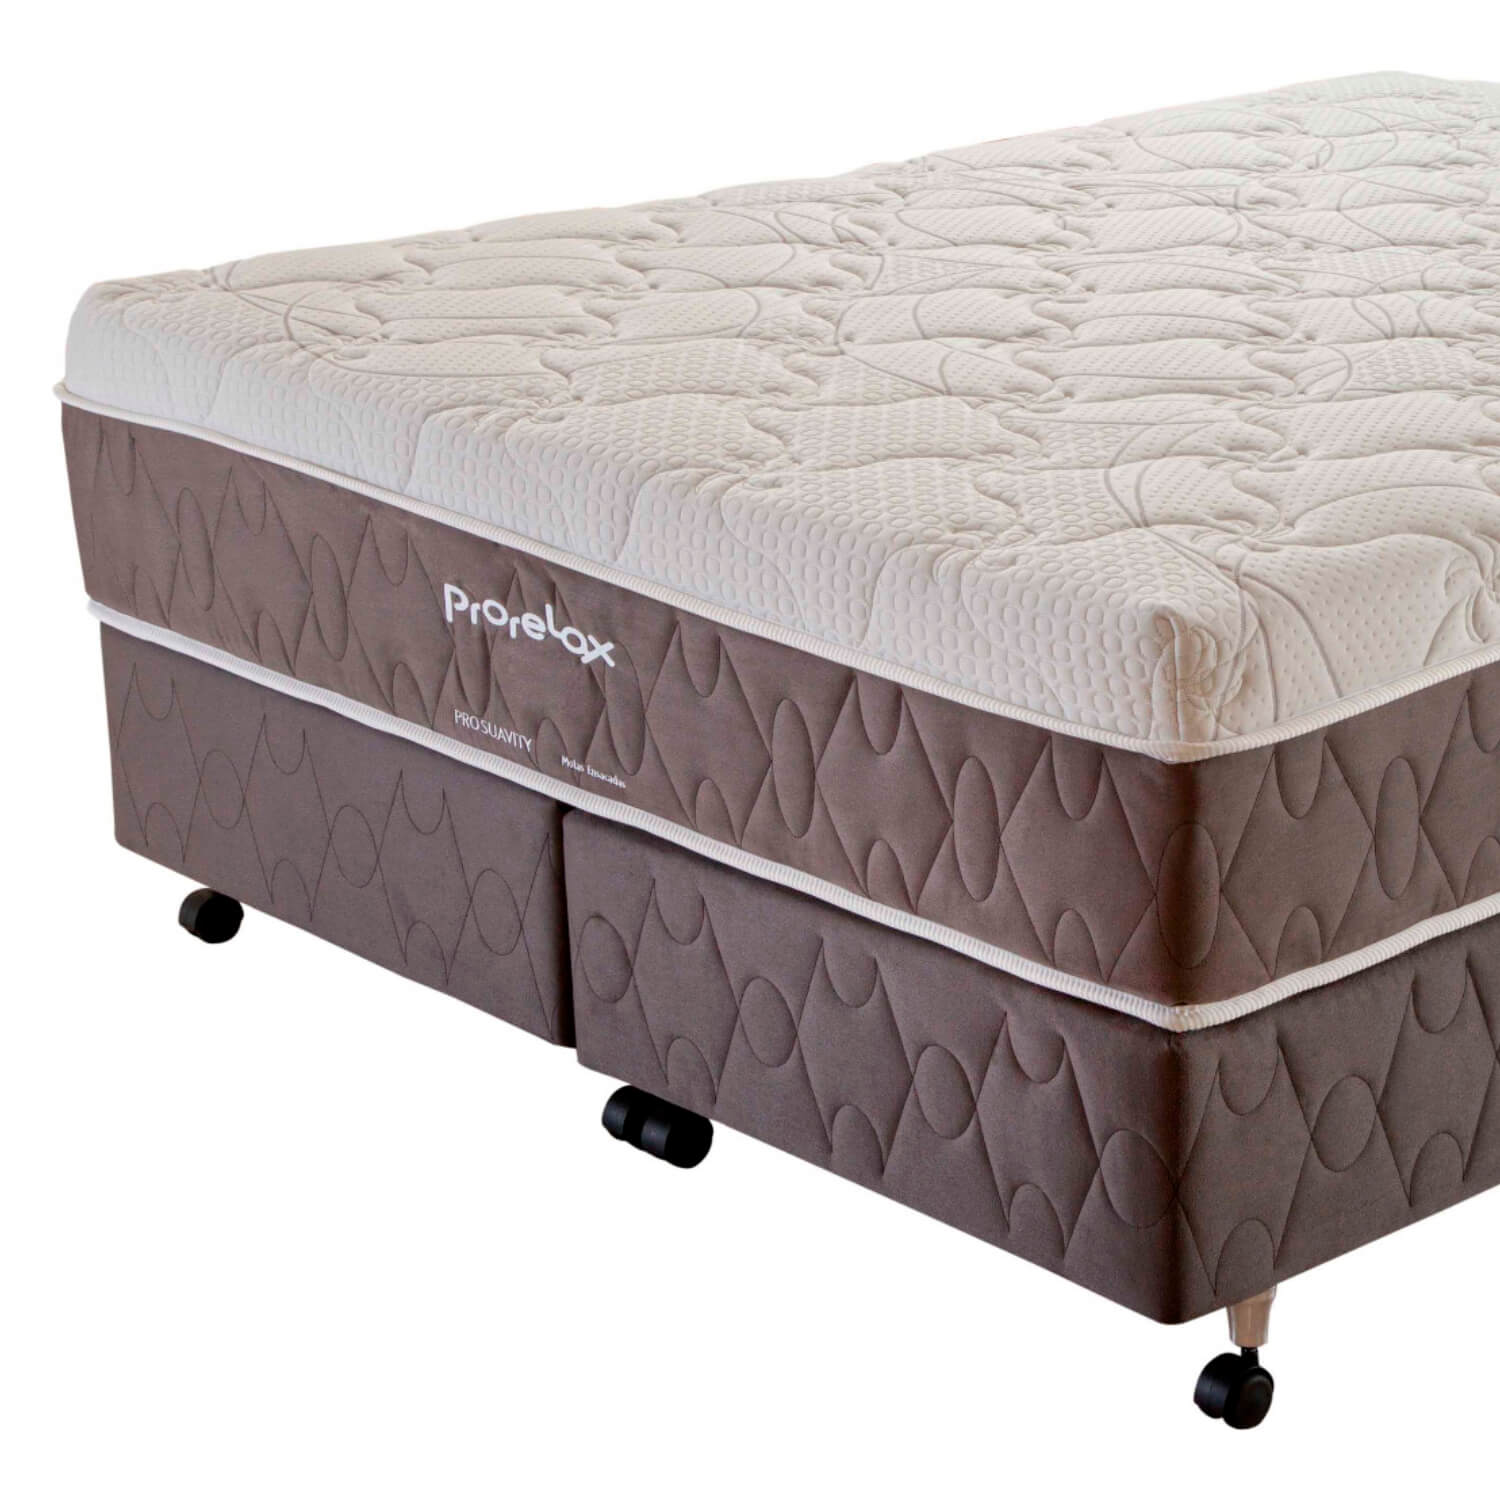 Cama Box King Size (Box + Colchão) Prorelax Pro Suavity 193x203 Pillow Top Turn Free